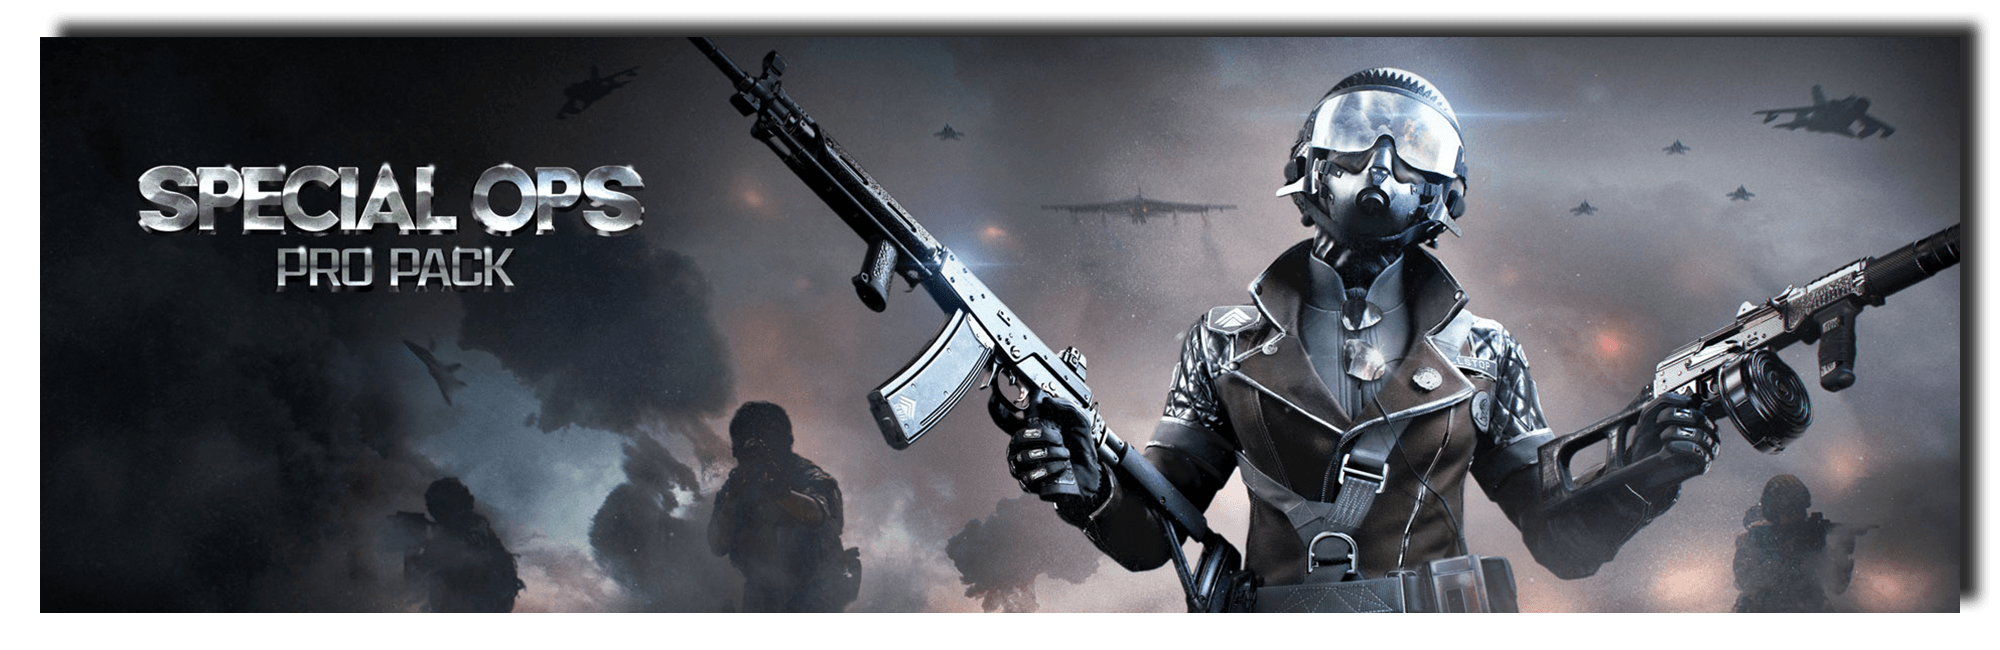 Banner image of the new Special Ops Pro Pack Bundle.